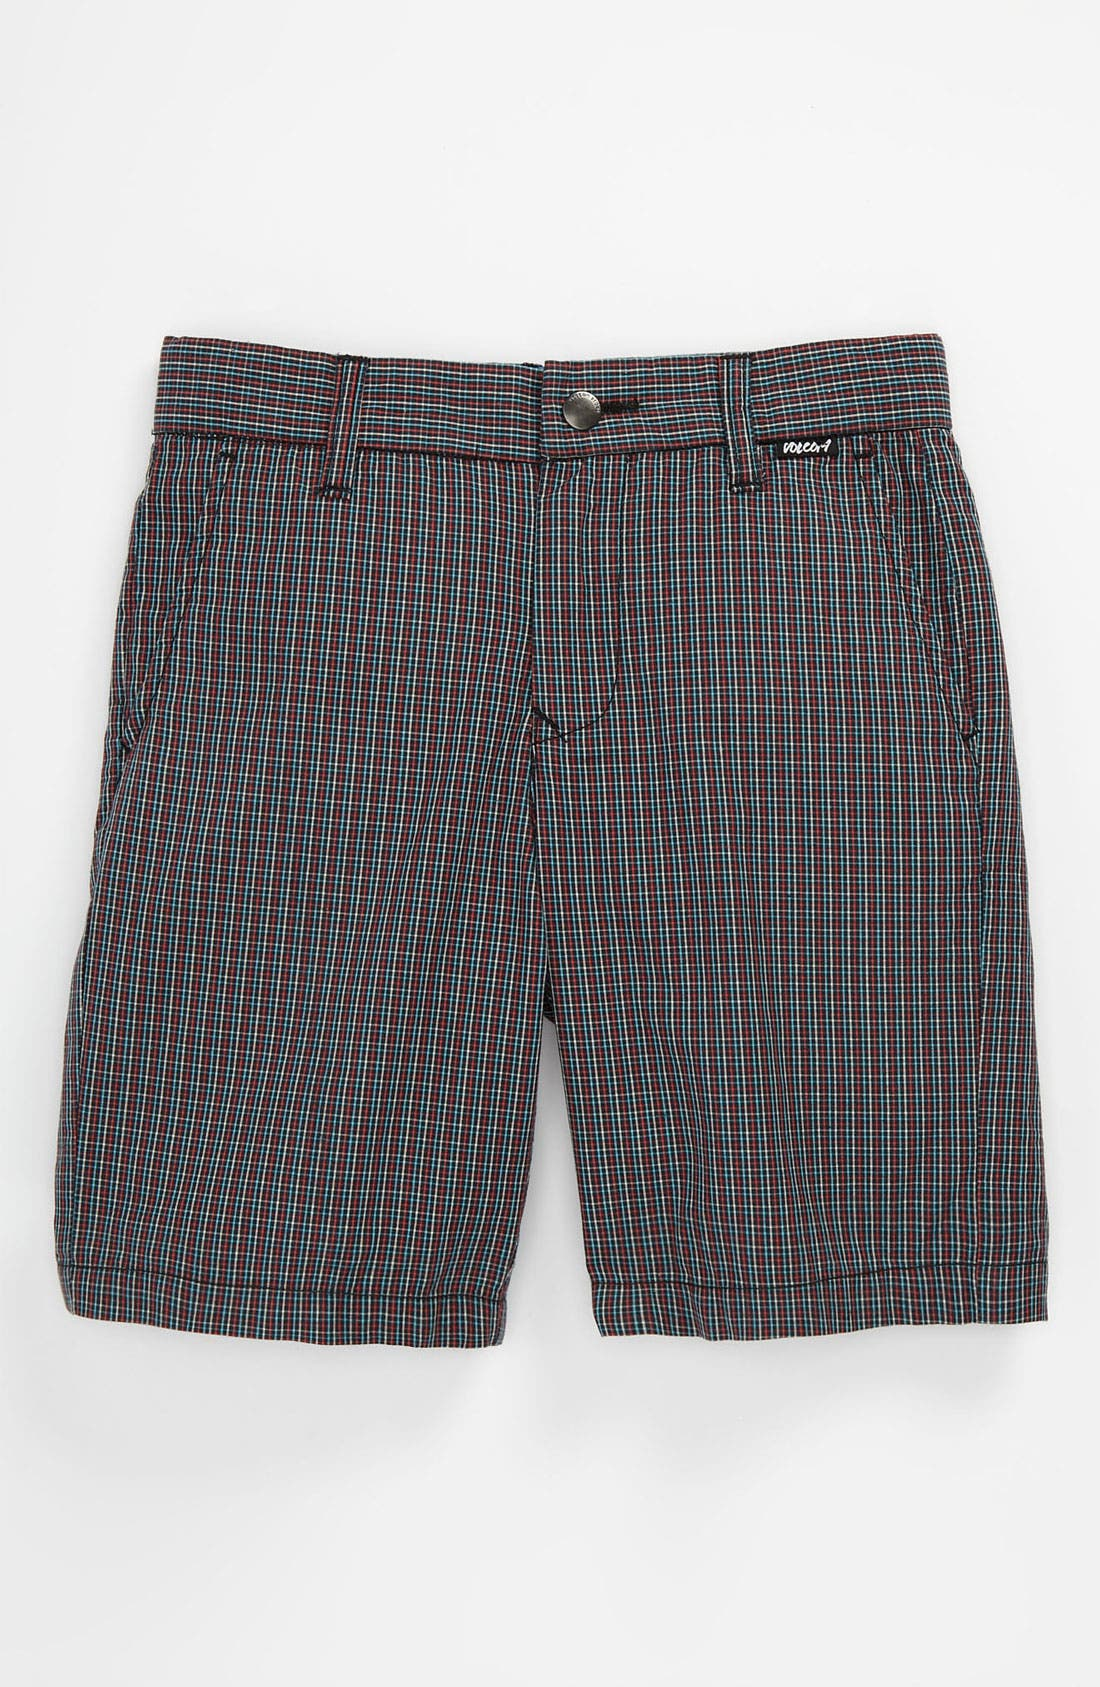 Alternate Image 1 Selected - Volcom 'Rushy' Plaid Shorts (Toddler)